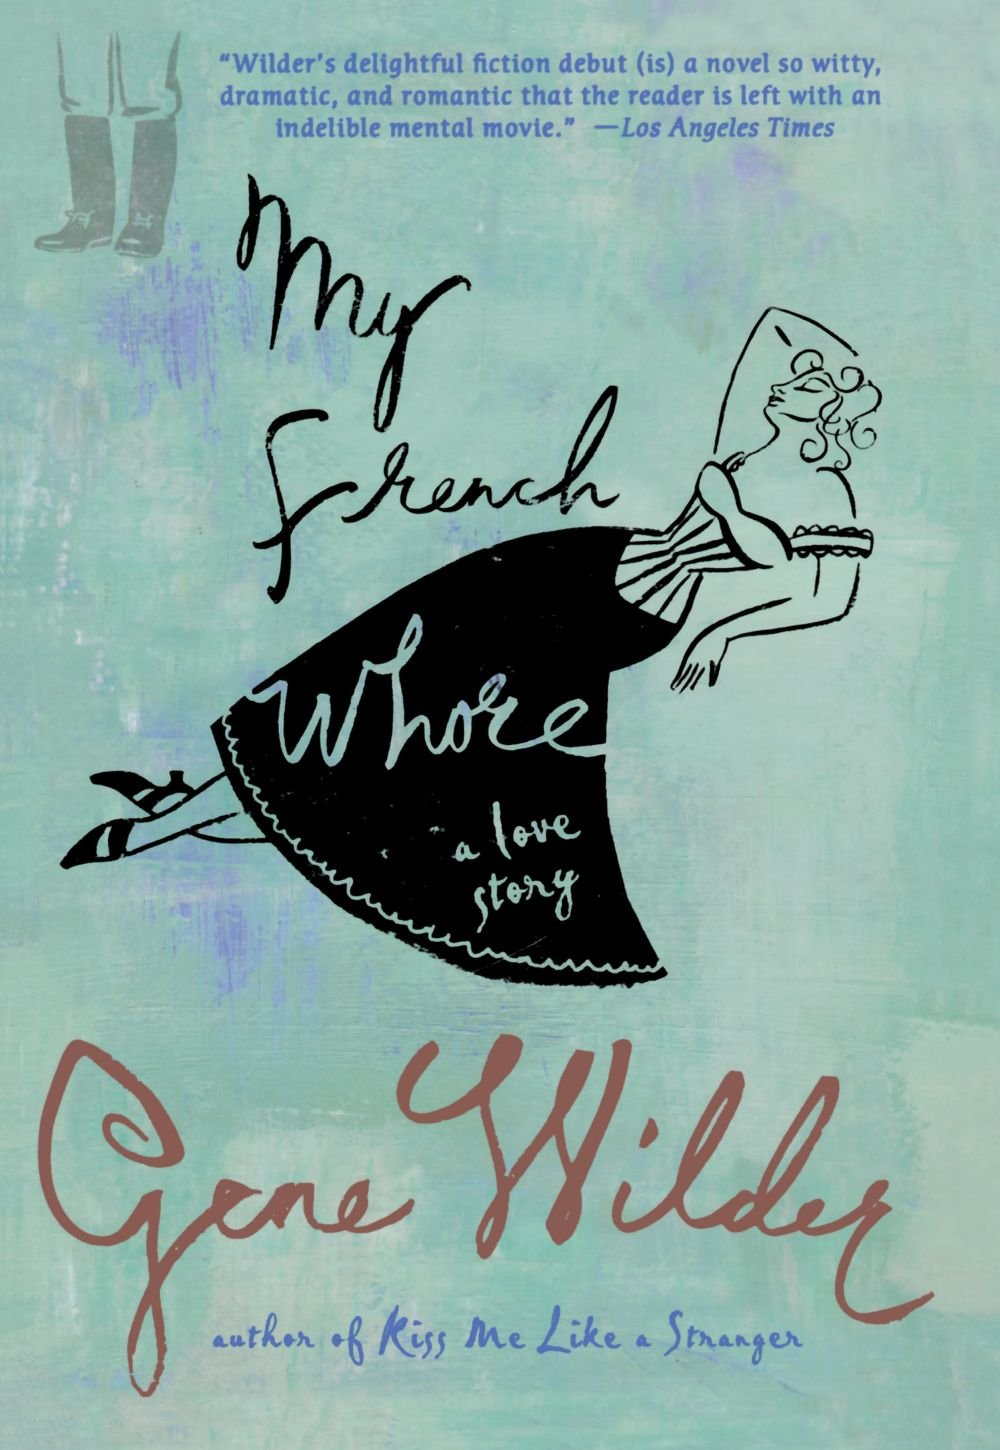 32 Books to Read During the World Cup | Literary Hub - Part 2